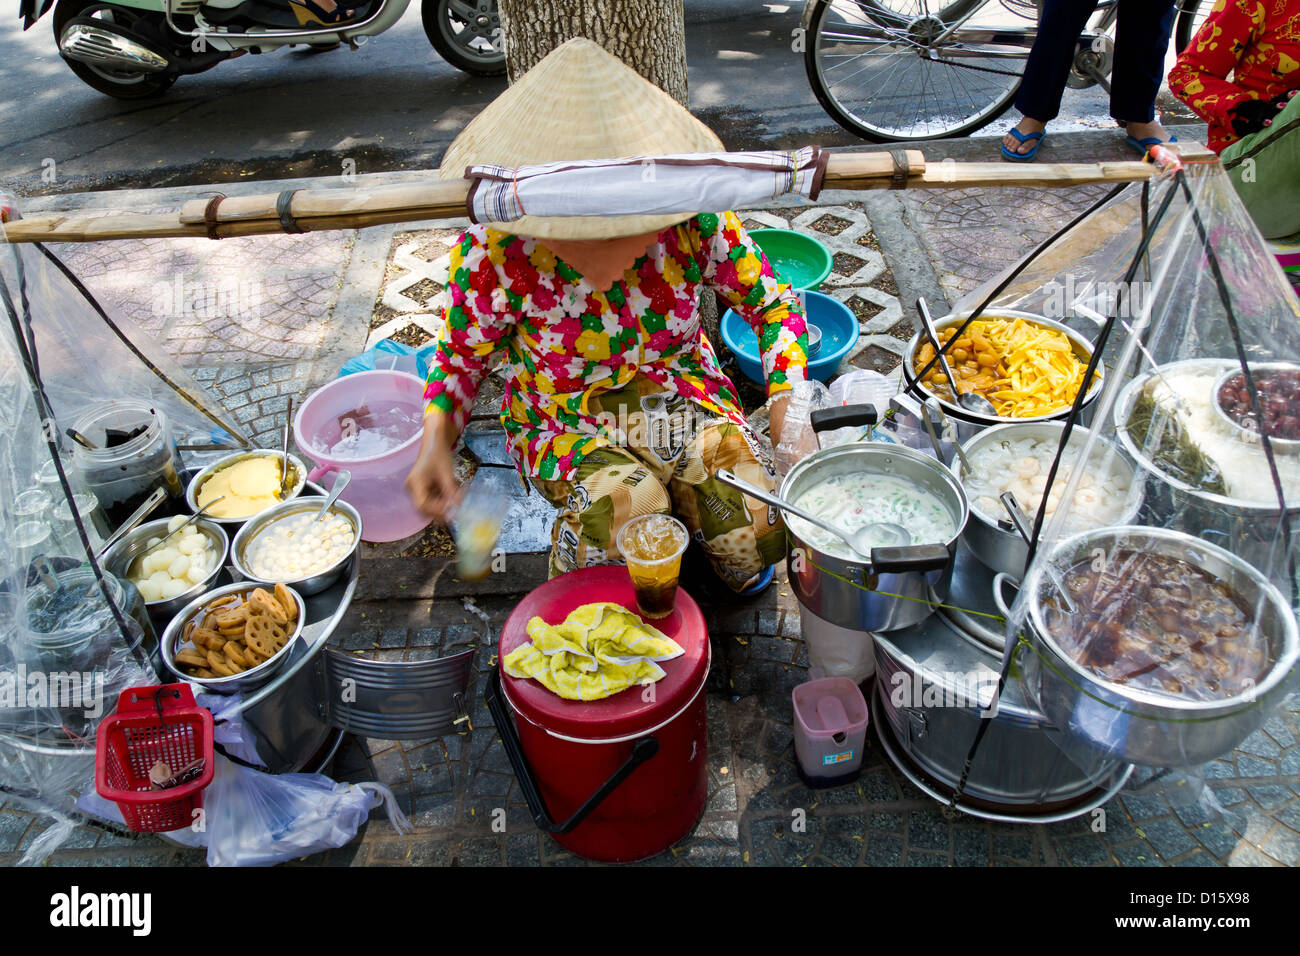 sale of street food in ho chi minh city vietnam stock photo 52376164 alamy. Black Bedroom Furniture Sets. Home Design Ideas